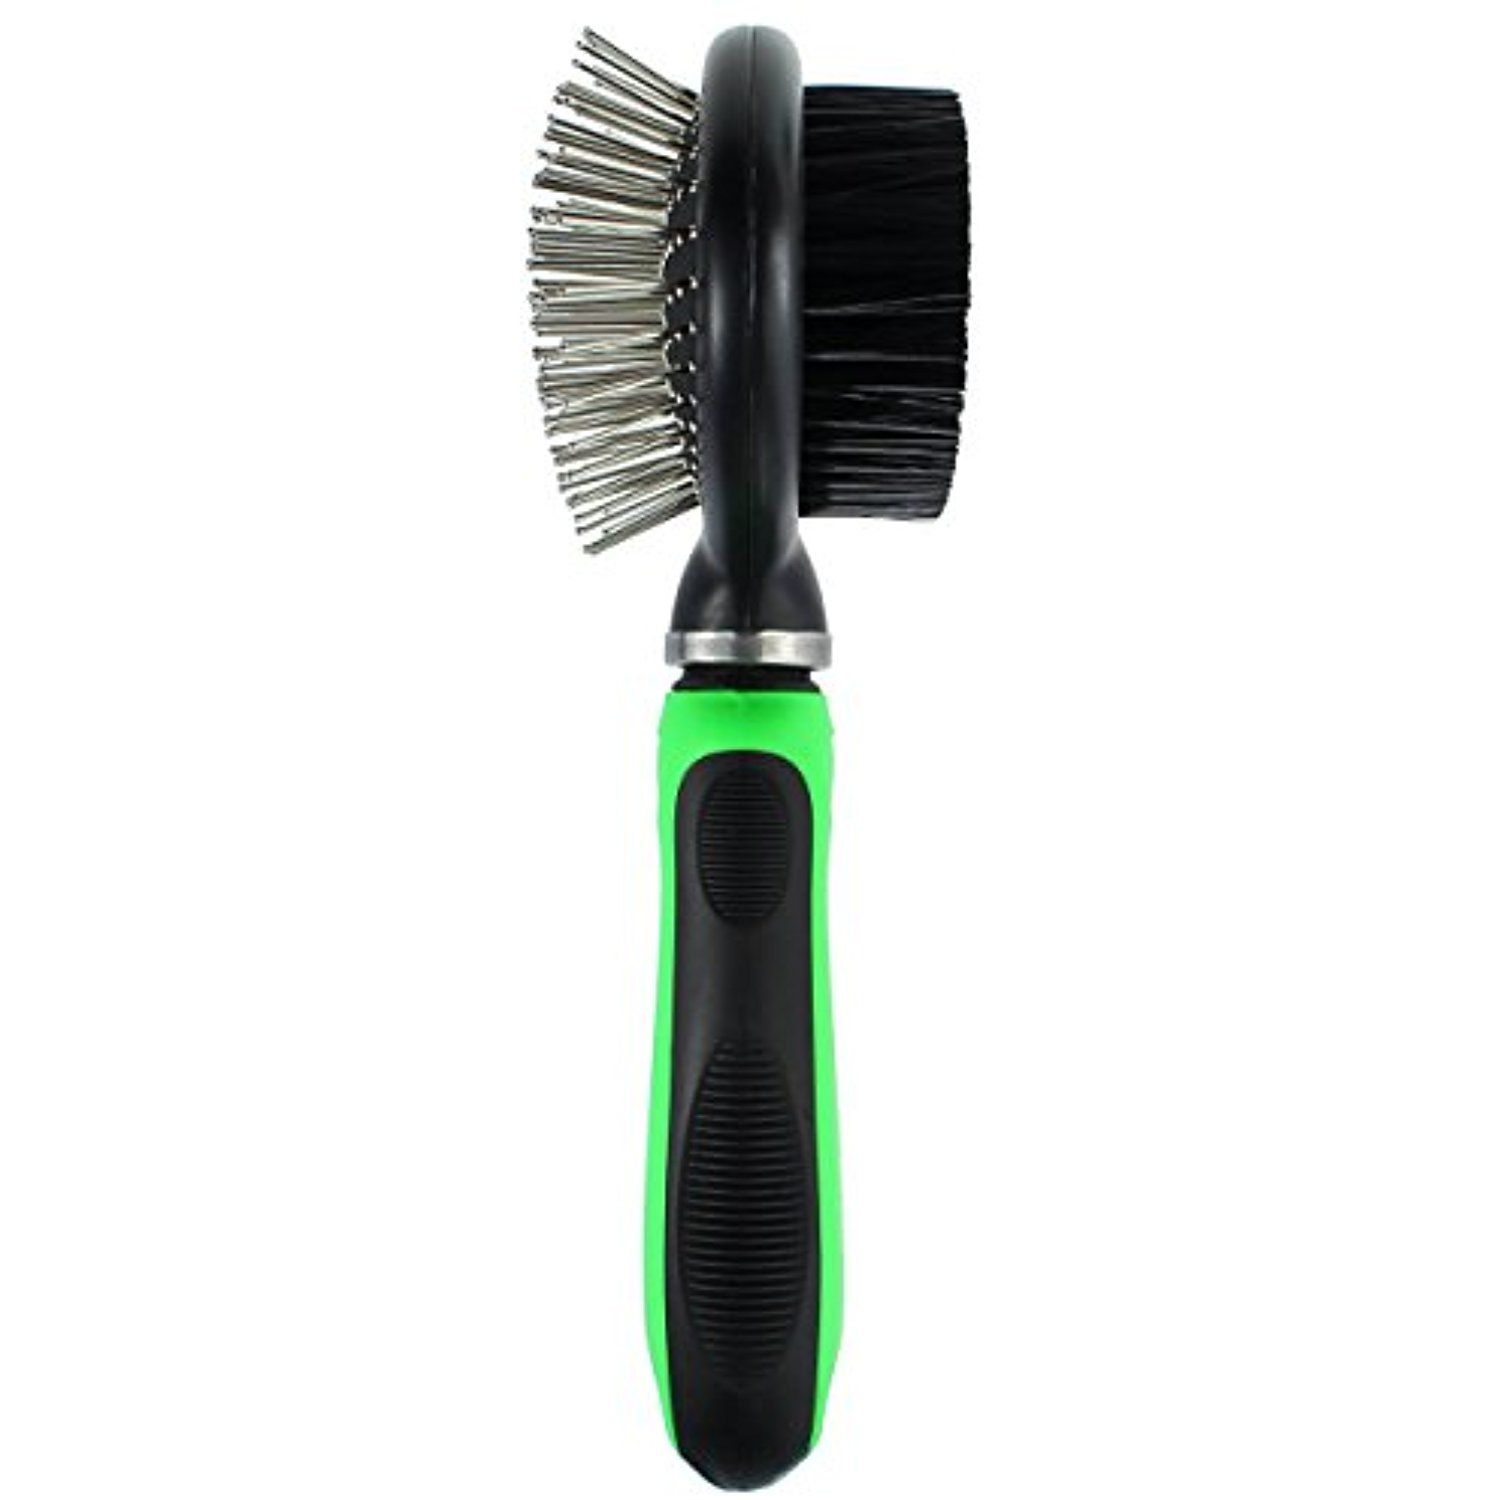 Pet Grooming Brush for Dogs and Cats with Long or Short Hair Dual 2 in 1 Pin and Bristle Quick and Easy to Use with Swivel Head for Extra Comfort by Fuzzy Family